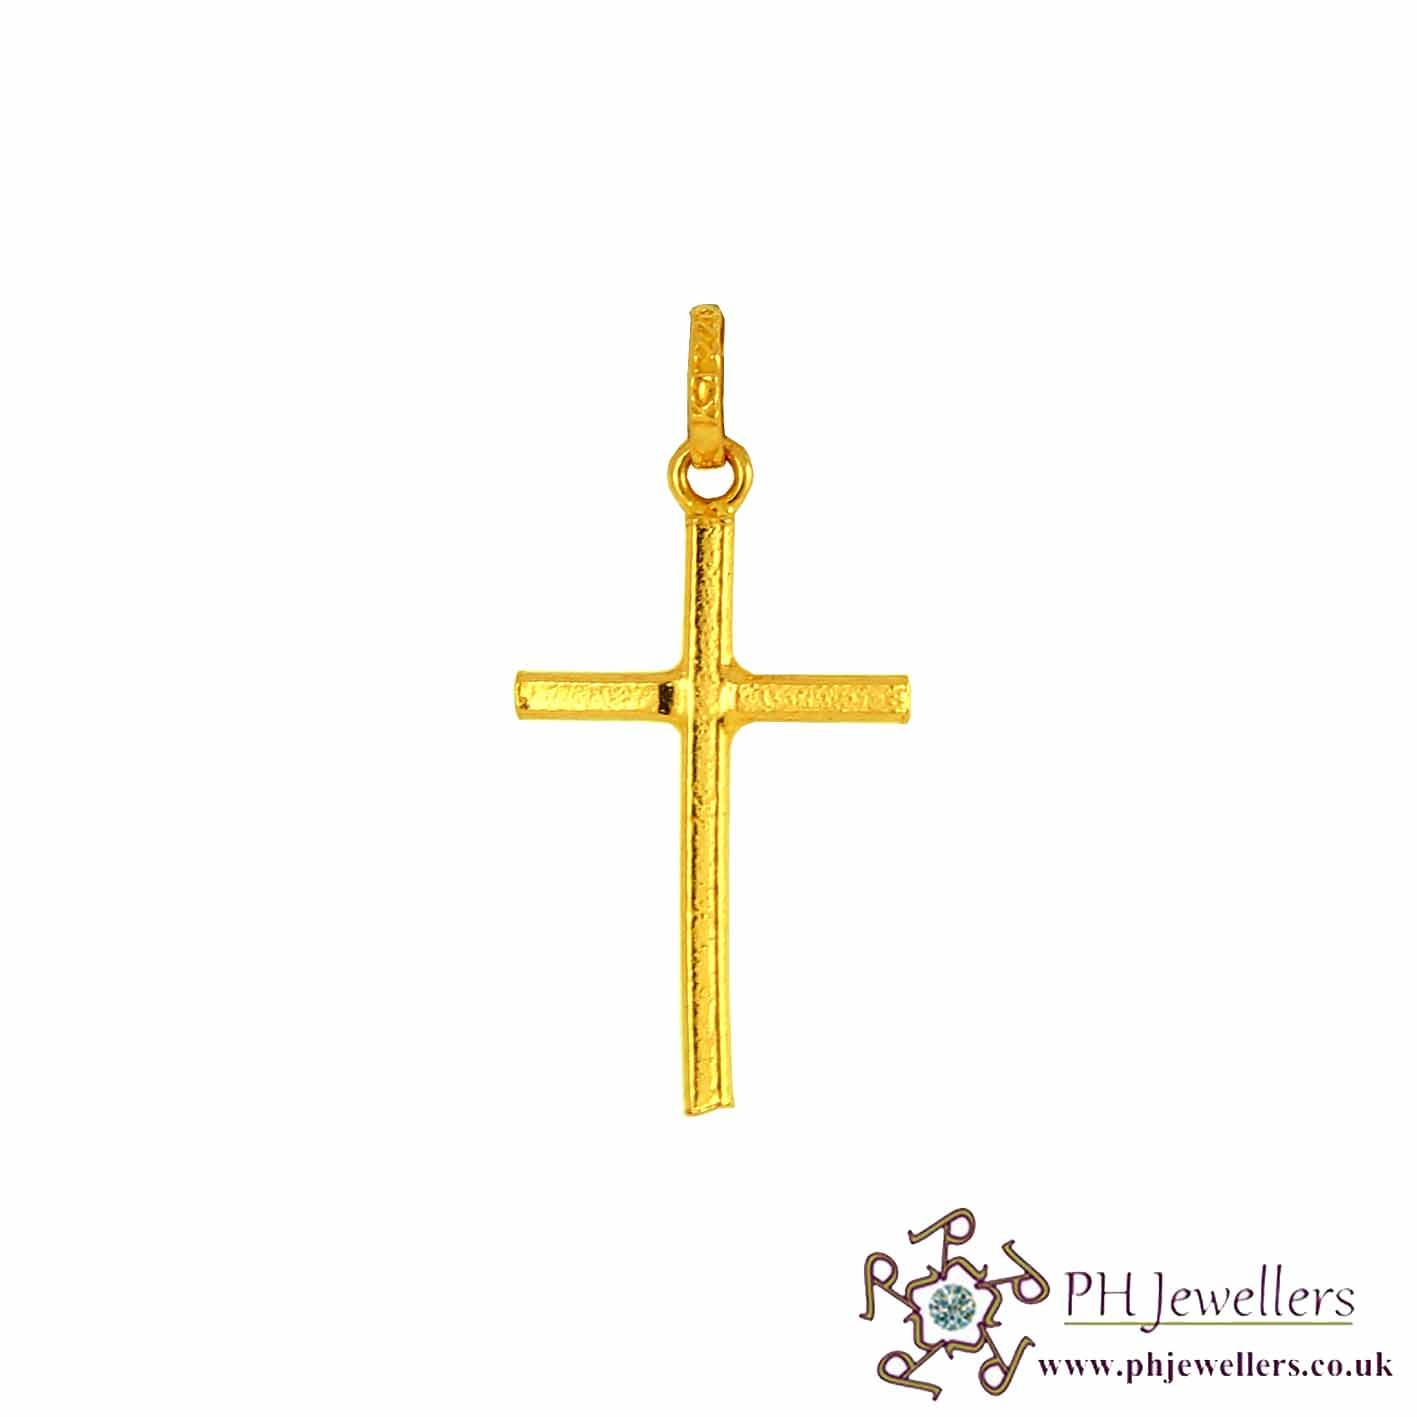 Online gold jewellery gold jewellery religious 22ct 916 hallmark online gold jewellery gold jewellery religious 22ct 916 hallmark yellow gold cross pendant rp40 22 carat gold jewellers aloadofball Gallery